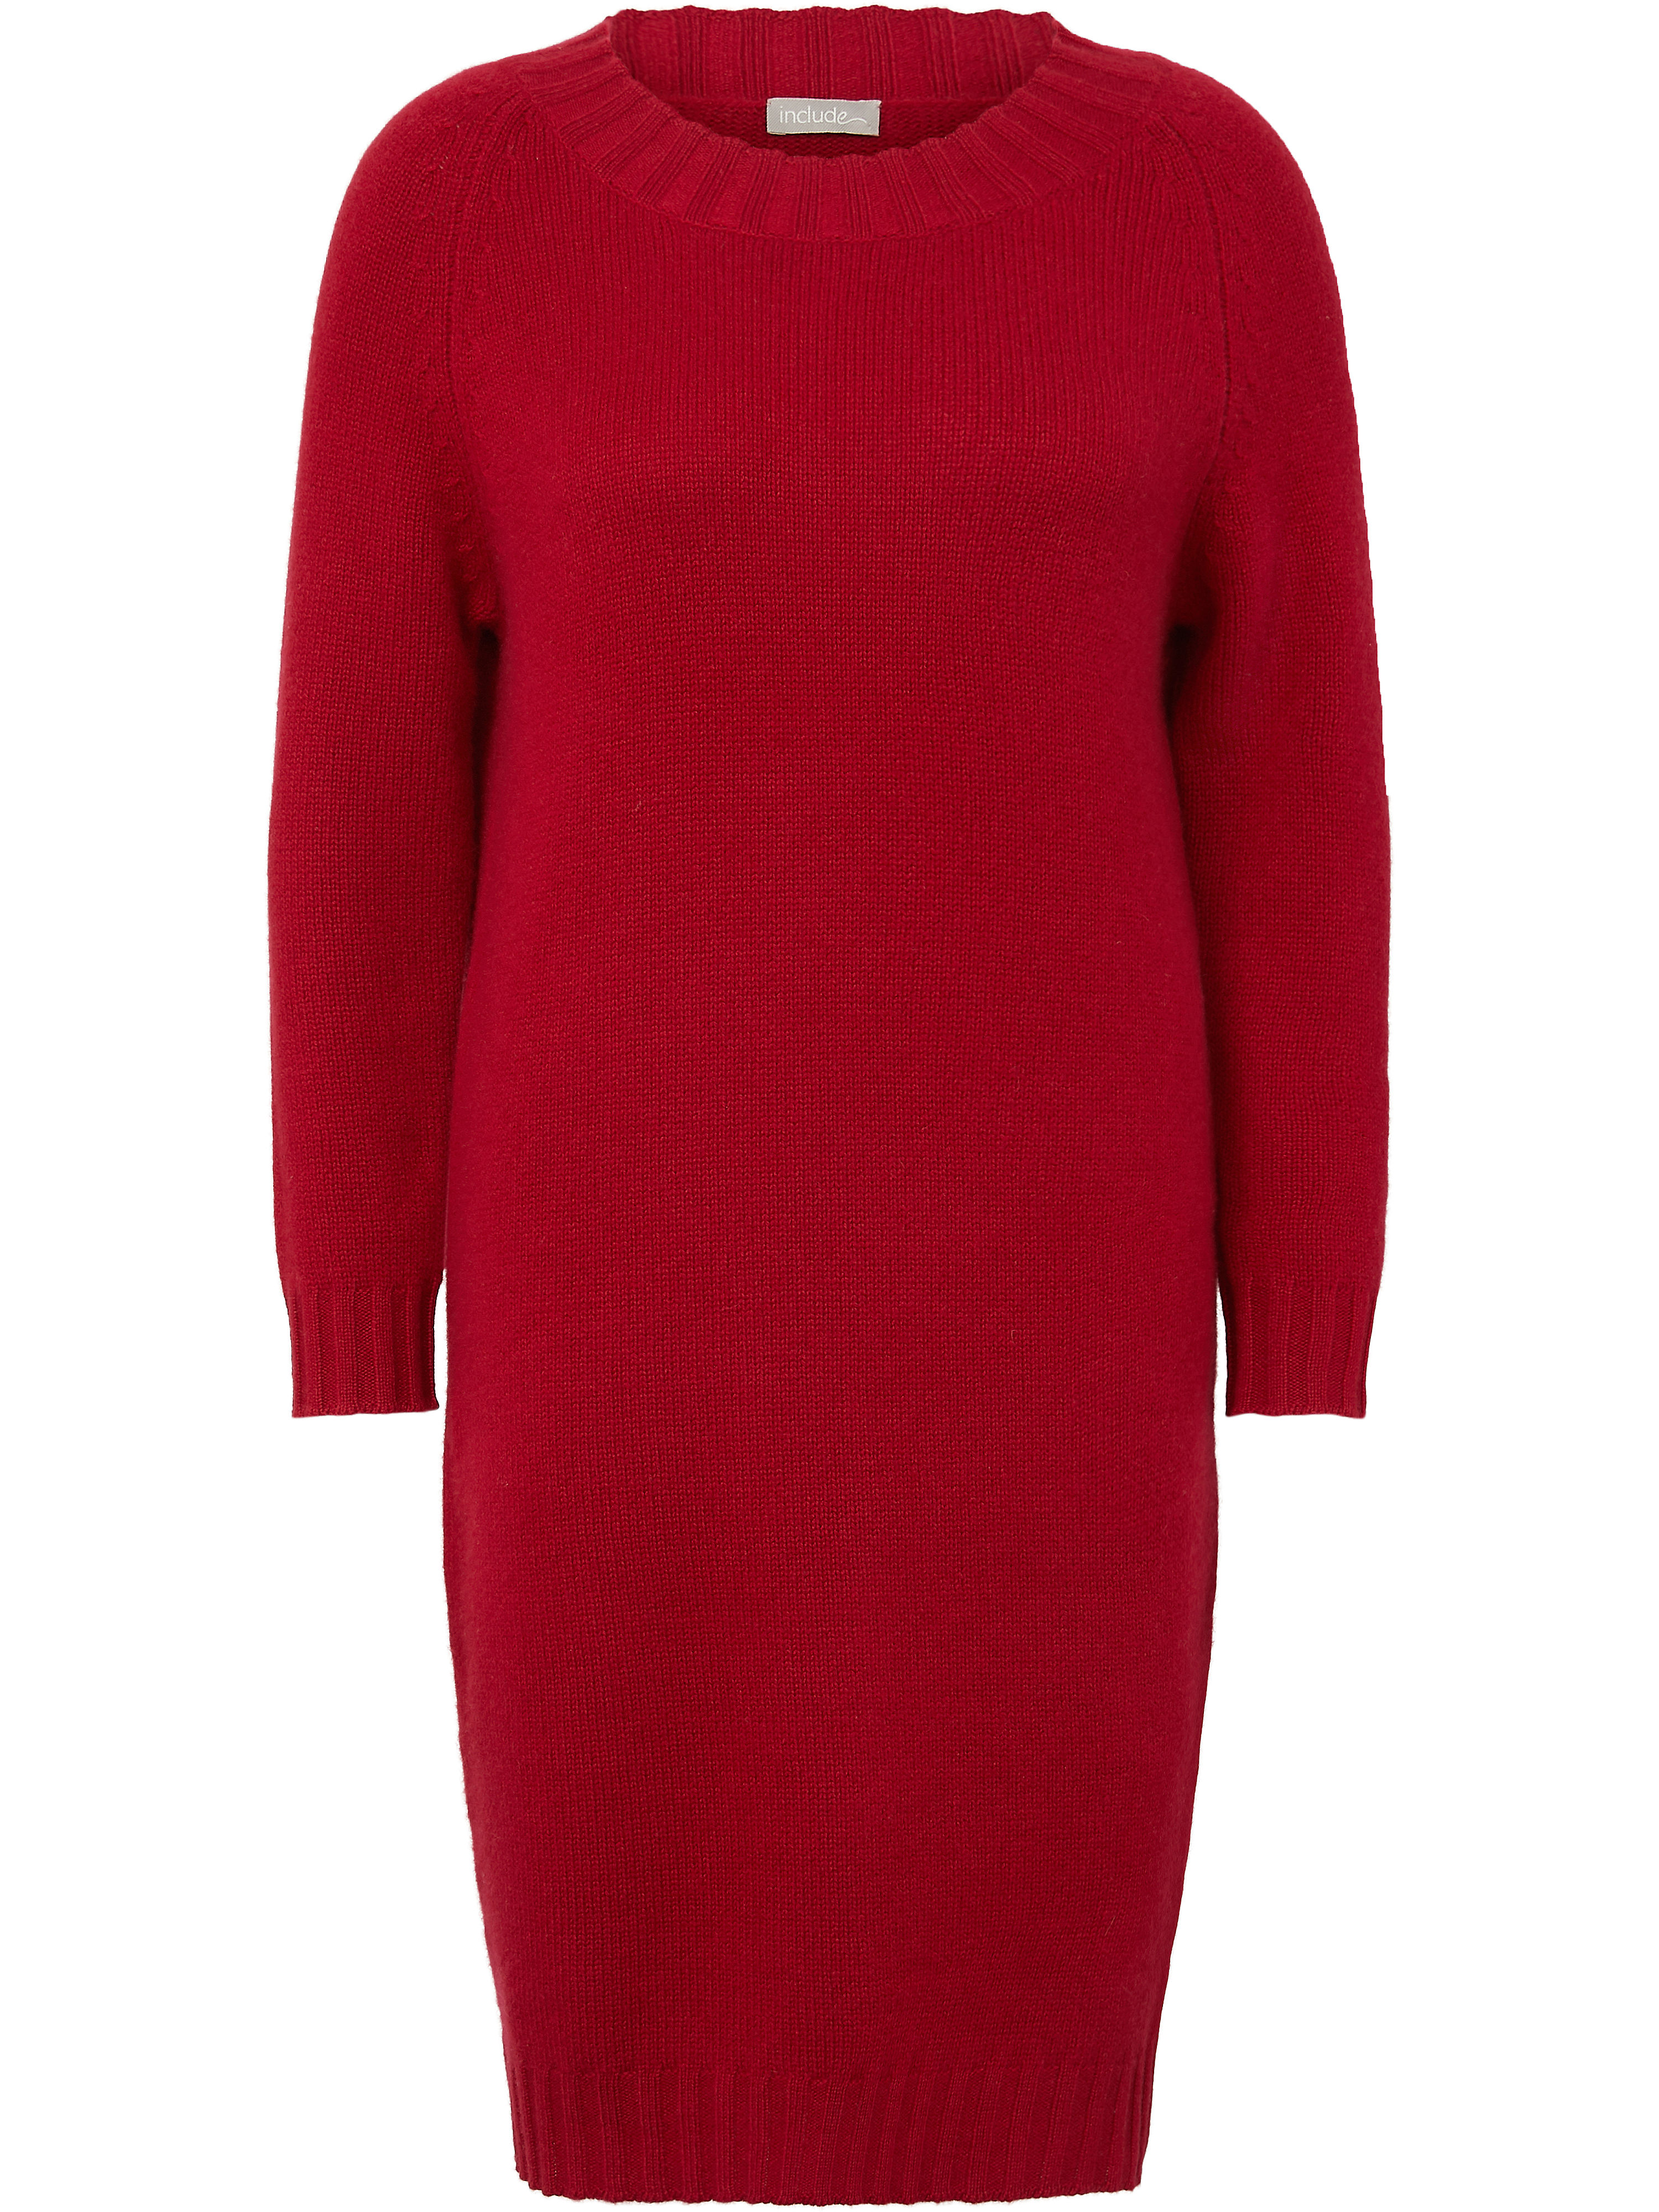 La robe maille 100% cachemire  include rouge taille 38